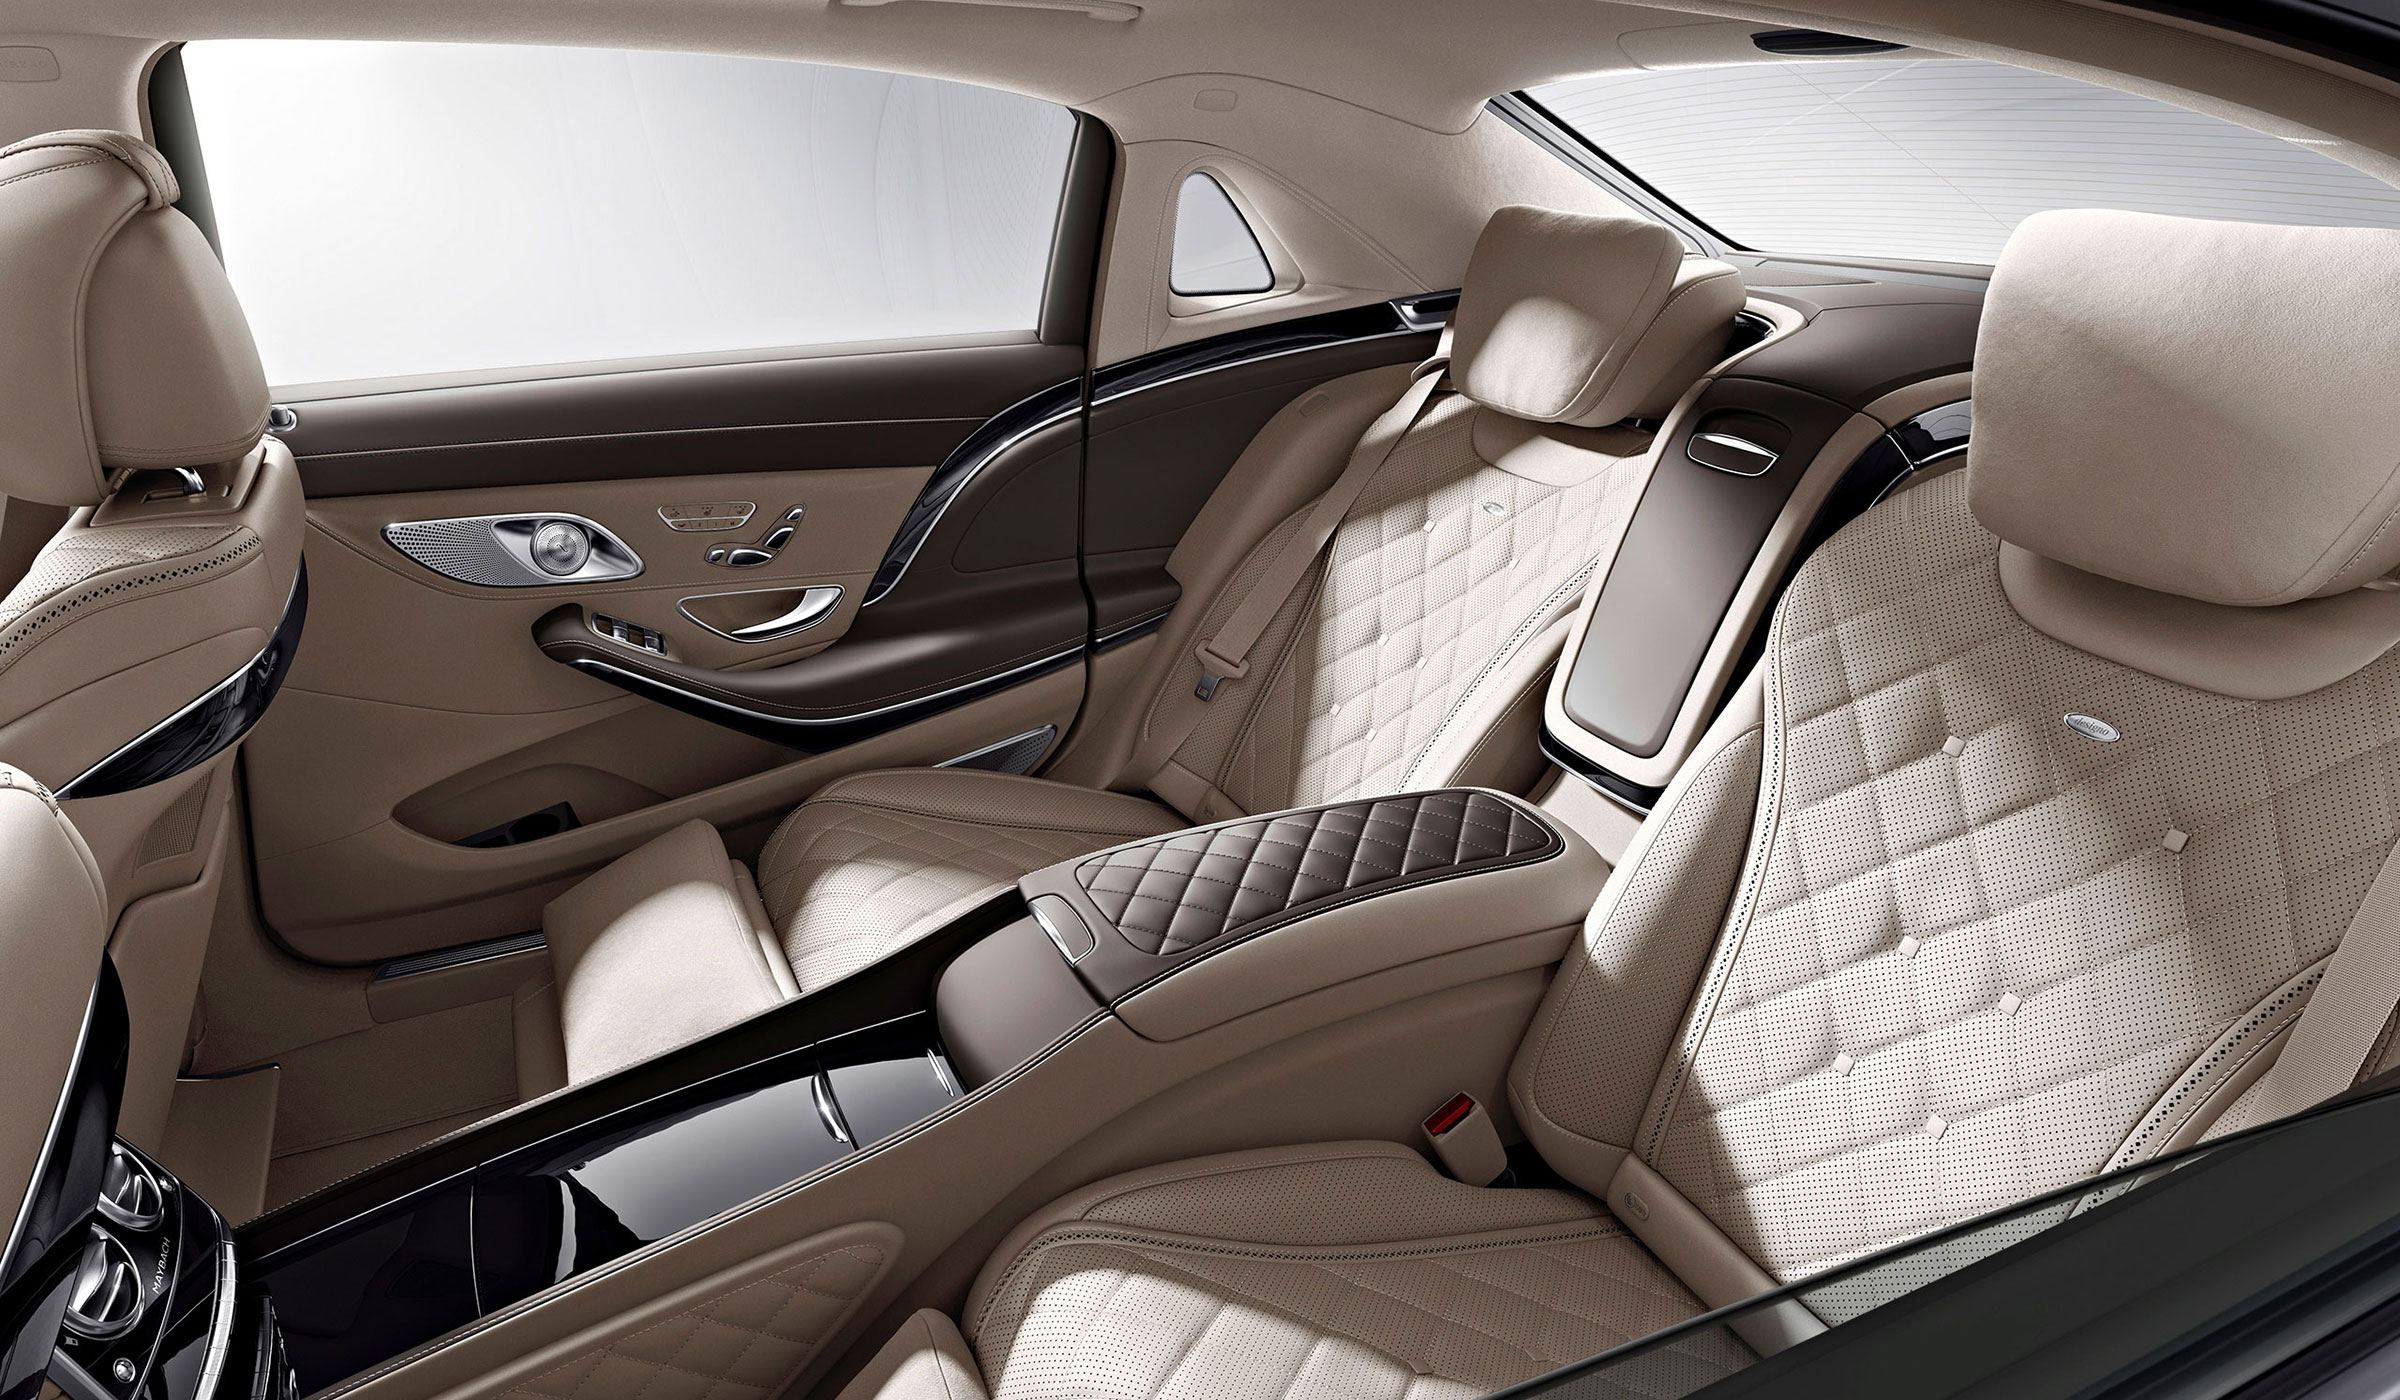 2015-S-CLASS-S600-MAYBACH-FUTURE-GALLERY-006-WR-D